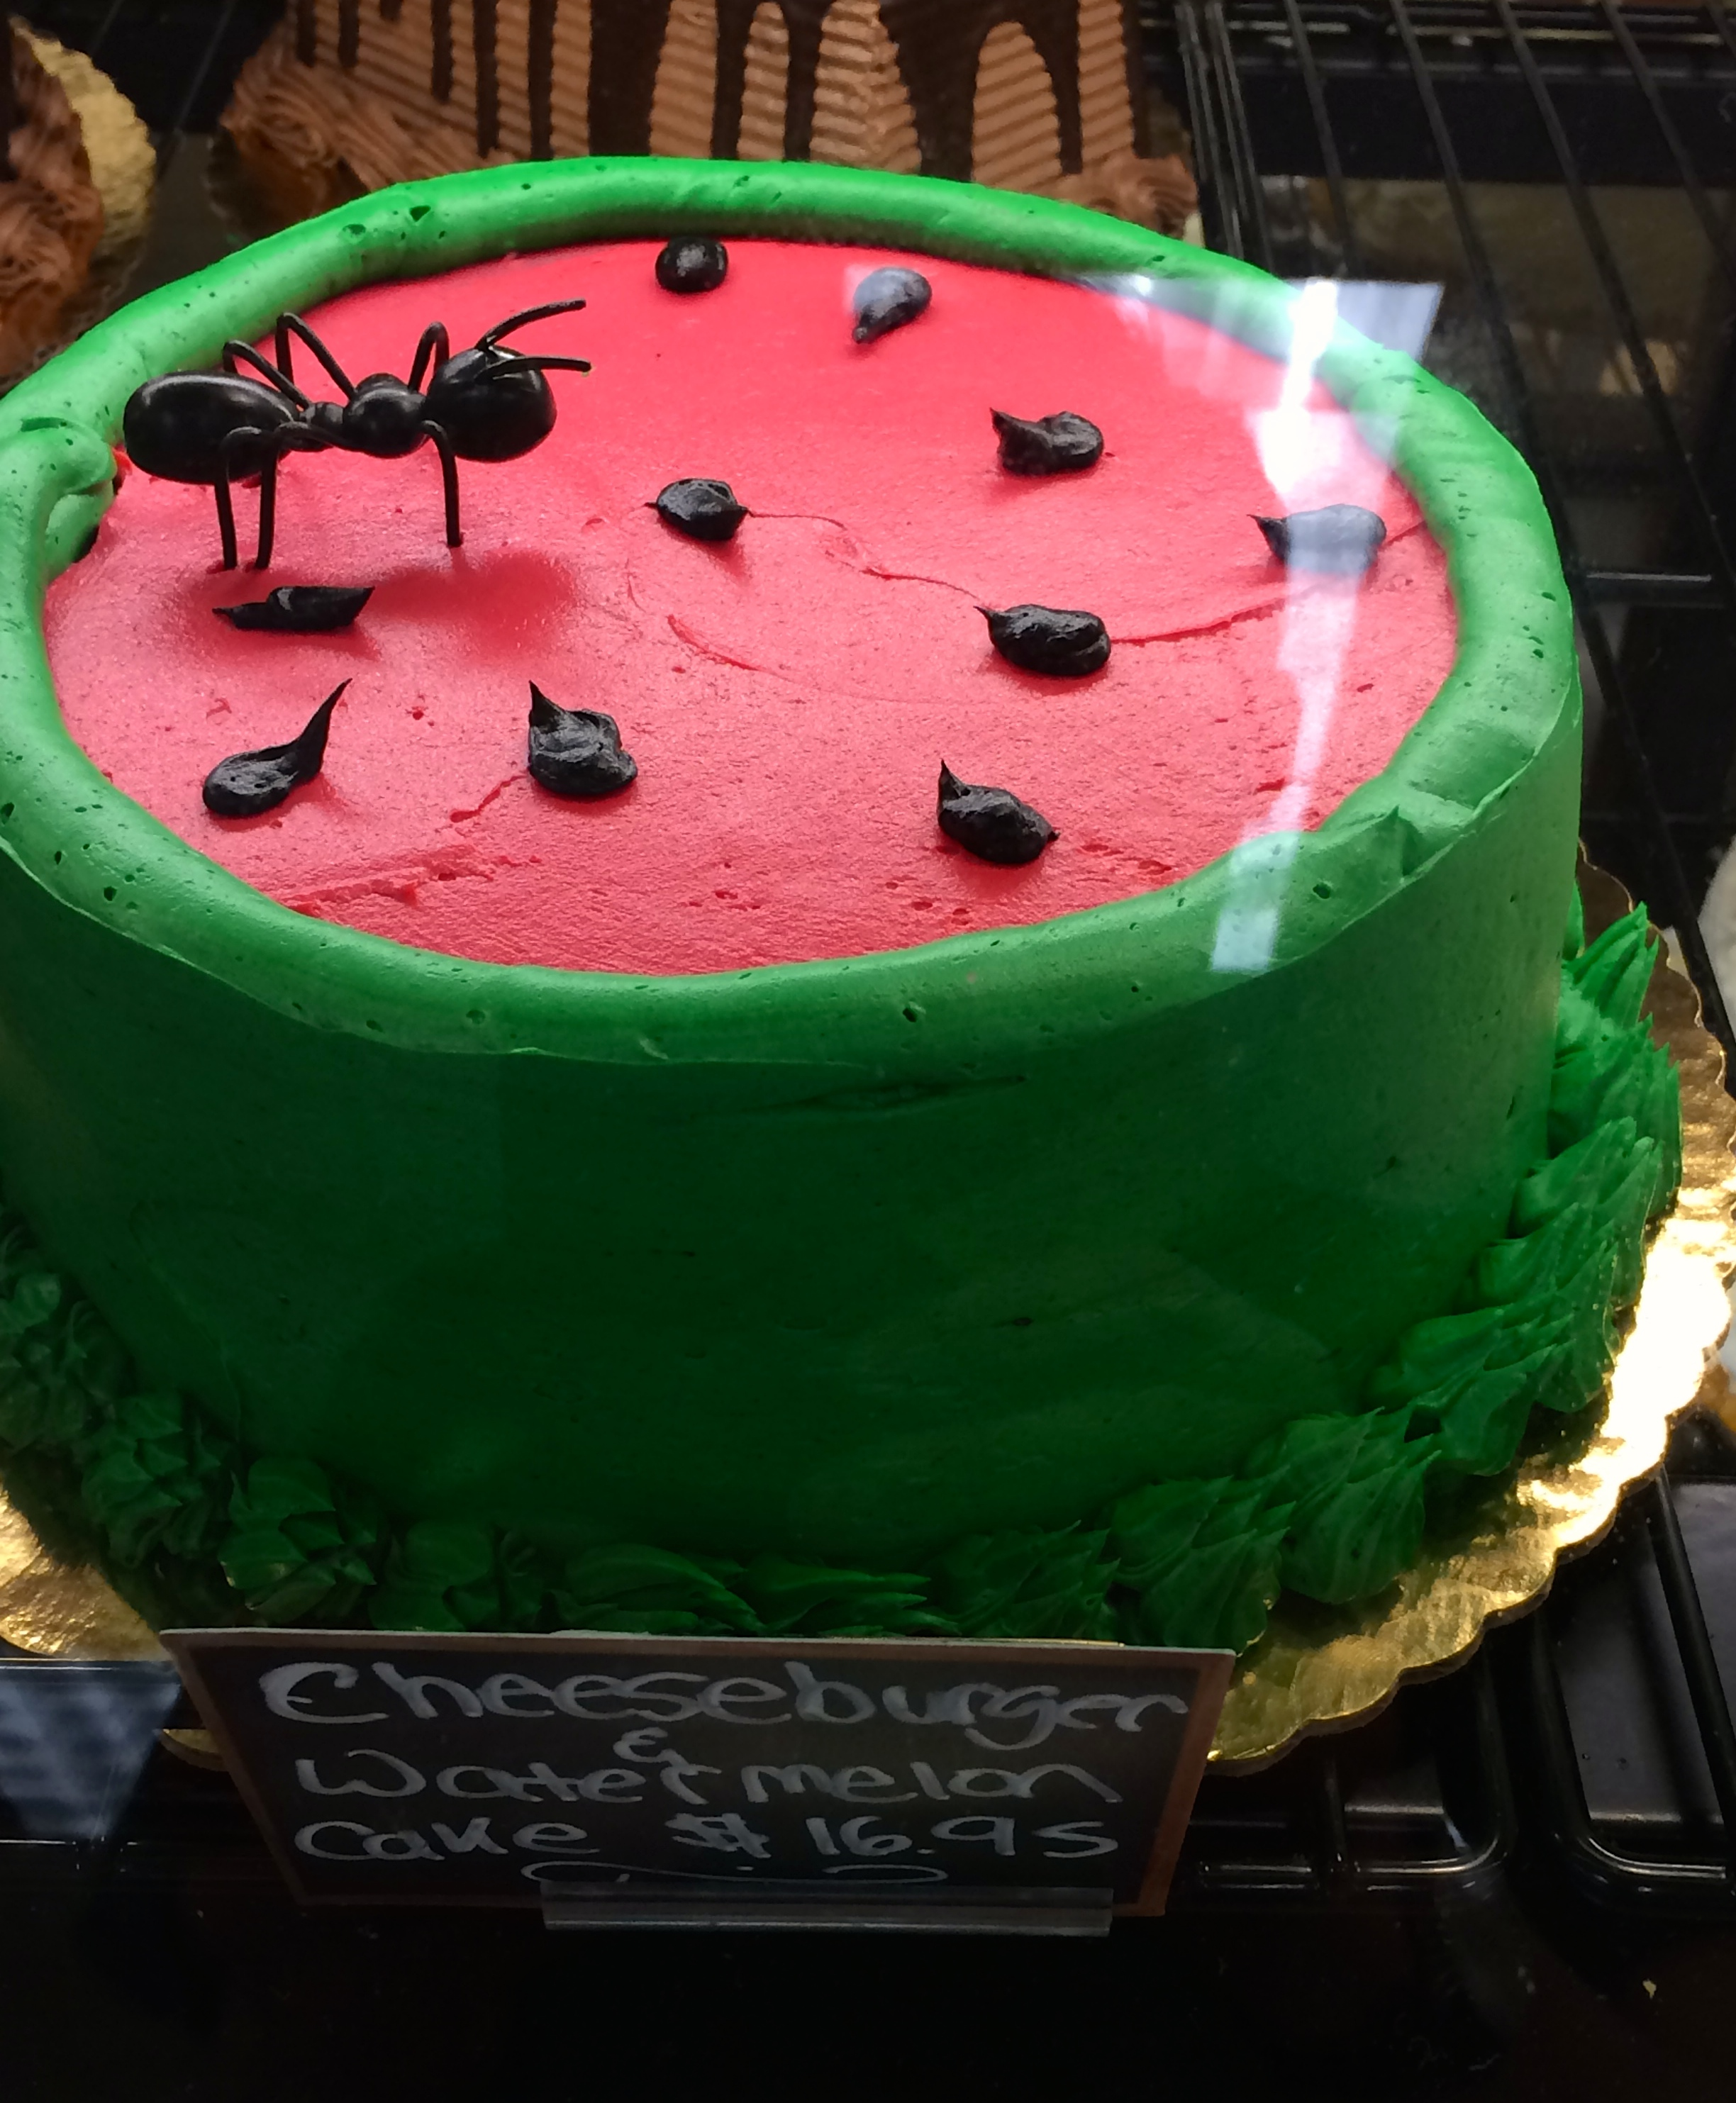 Cheeseburger and watermelon cake. A full meal in a cake, with an ant.